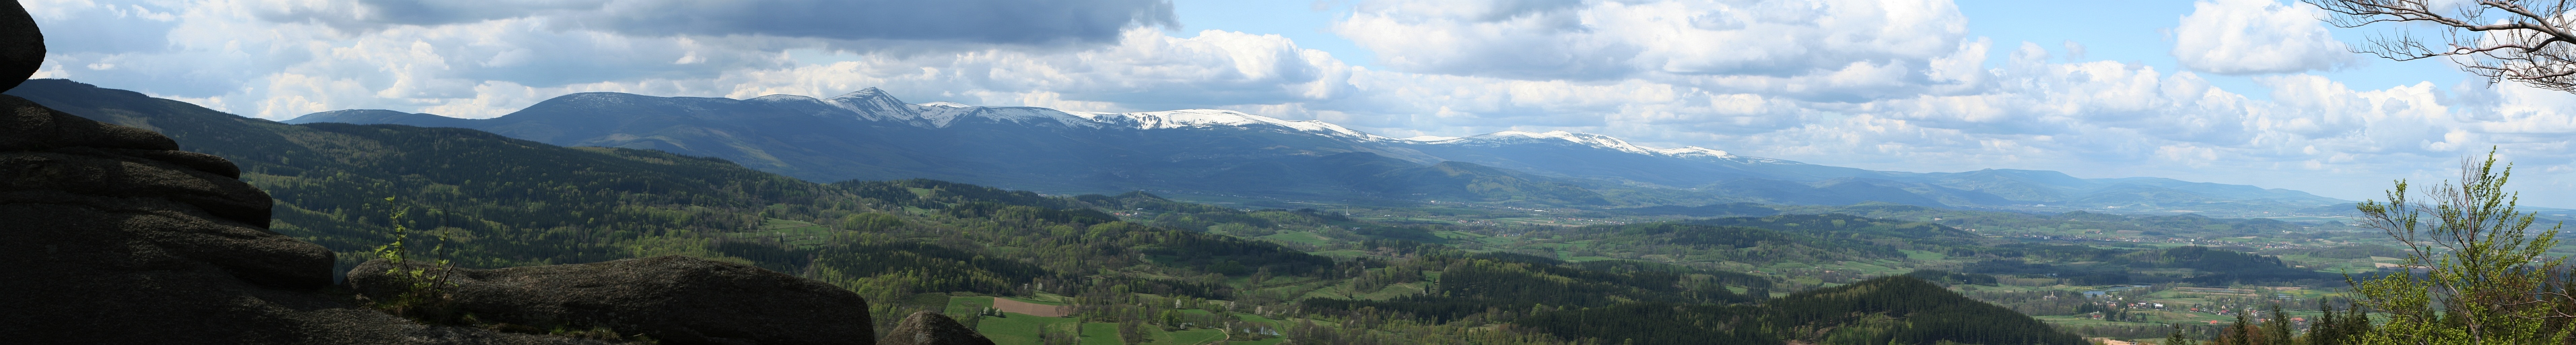 Panorama of the Karkonosze (Giant Mountains) and the Izera Mountains from the Rudawy Janowickie